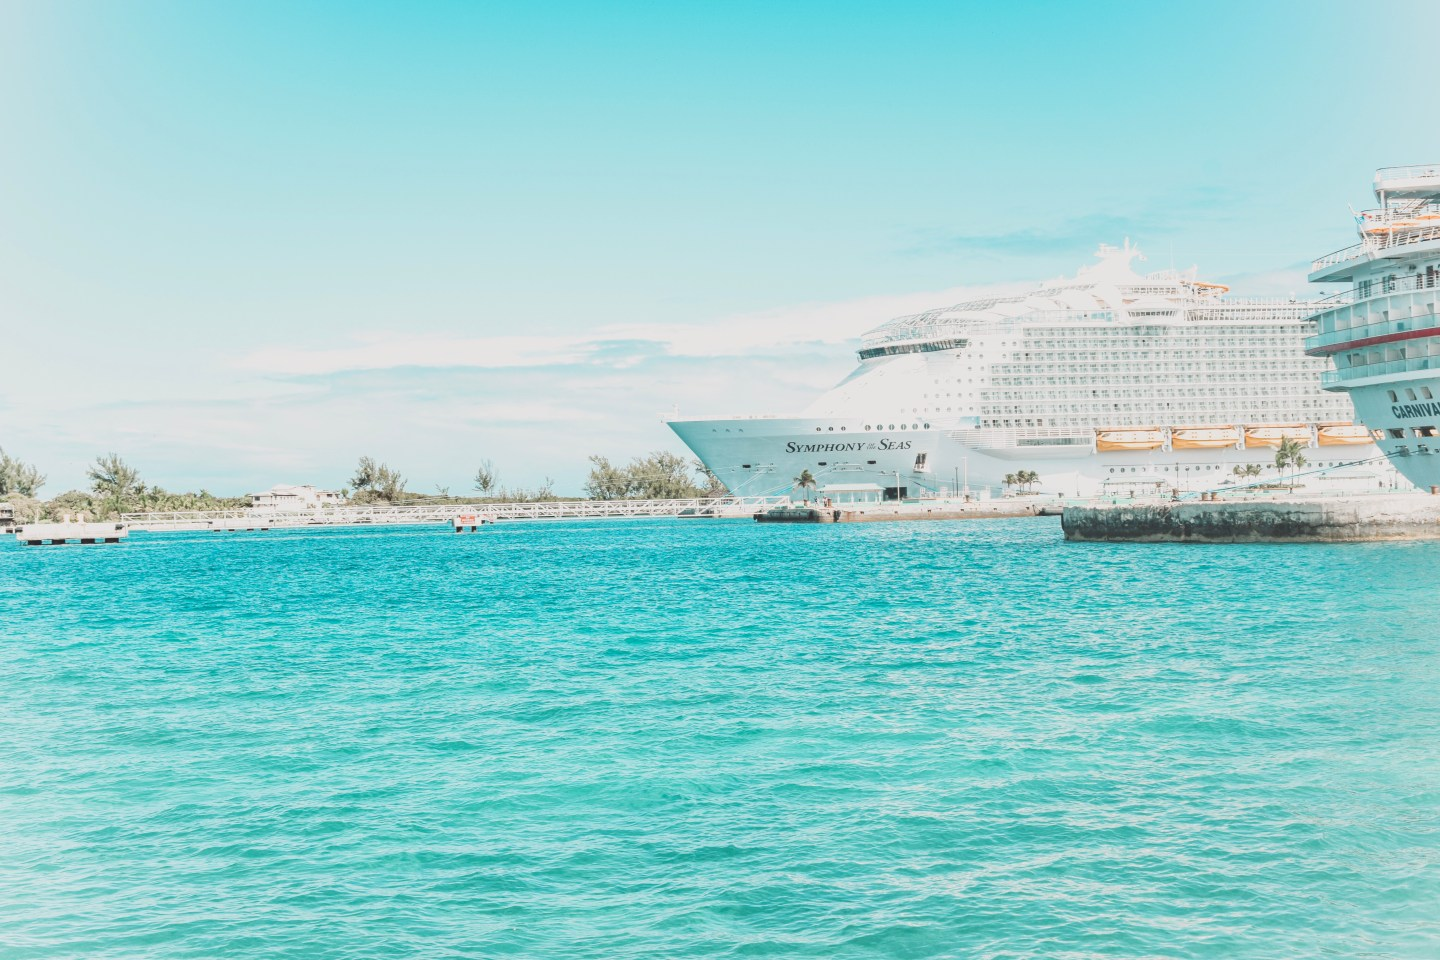 Travel with kids: Royal Caribbean Symphony Of the seas